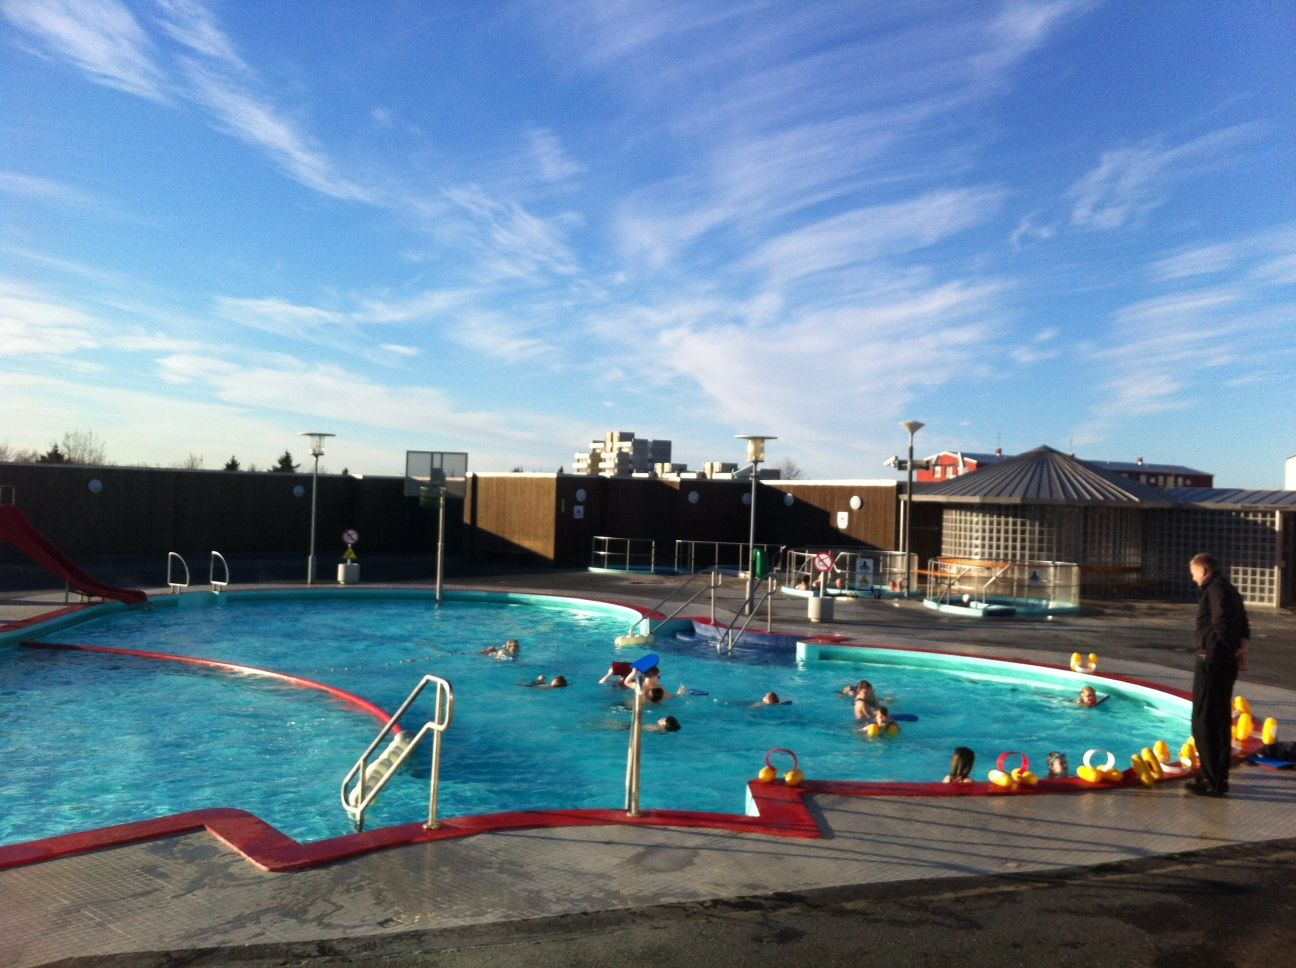 The Best Swimming Pools in Reykjavik | Swimming pools, Iceland and ...